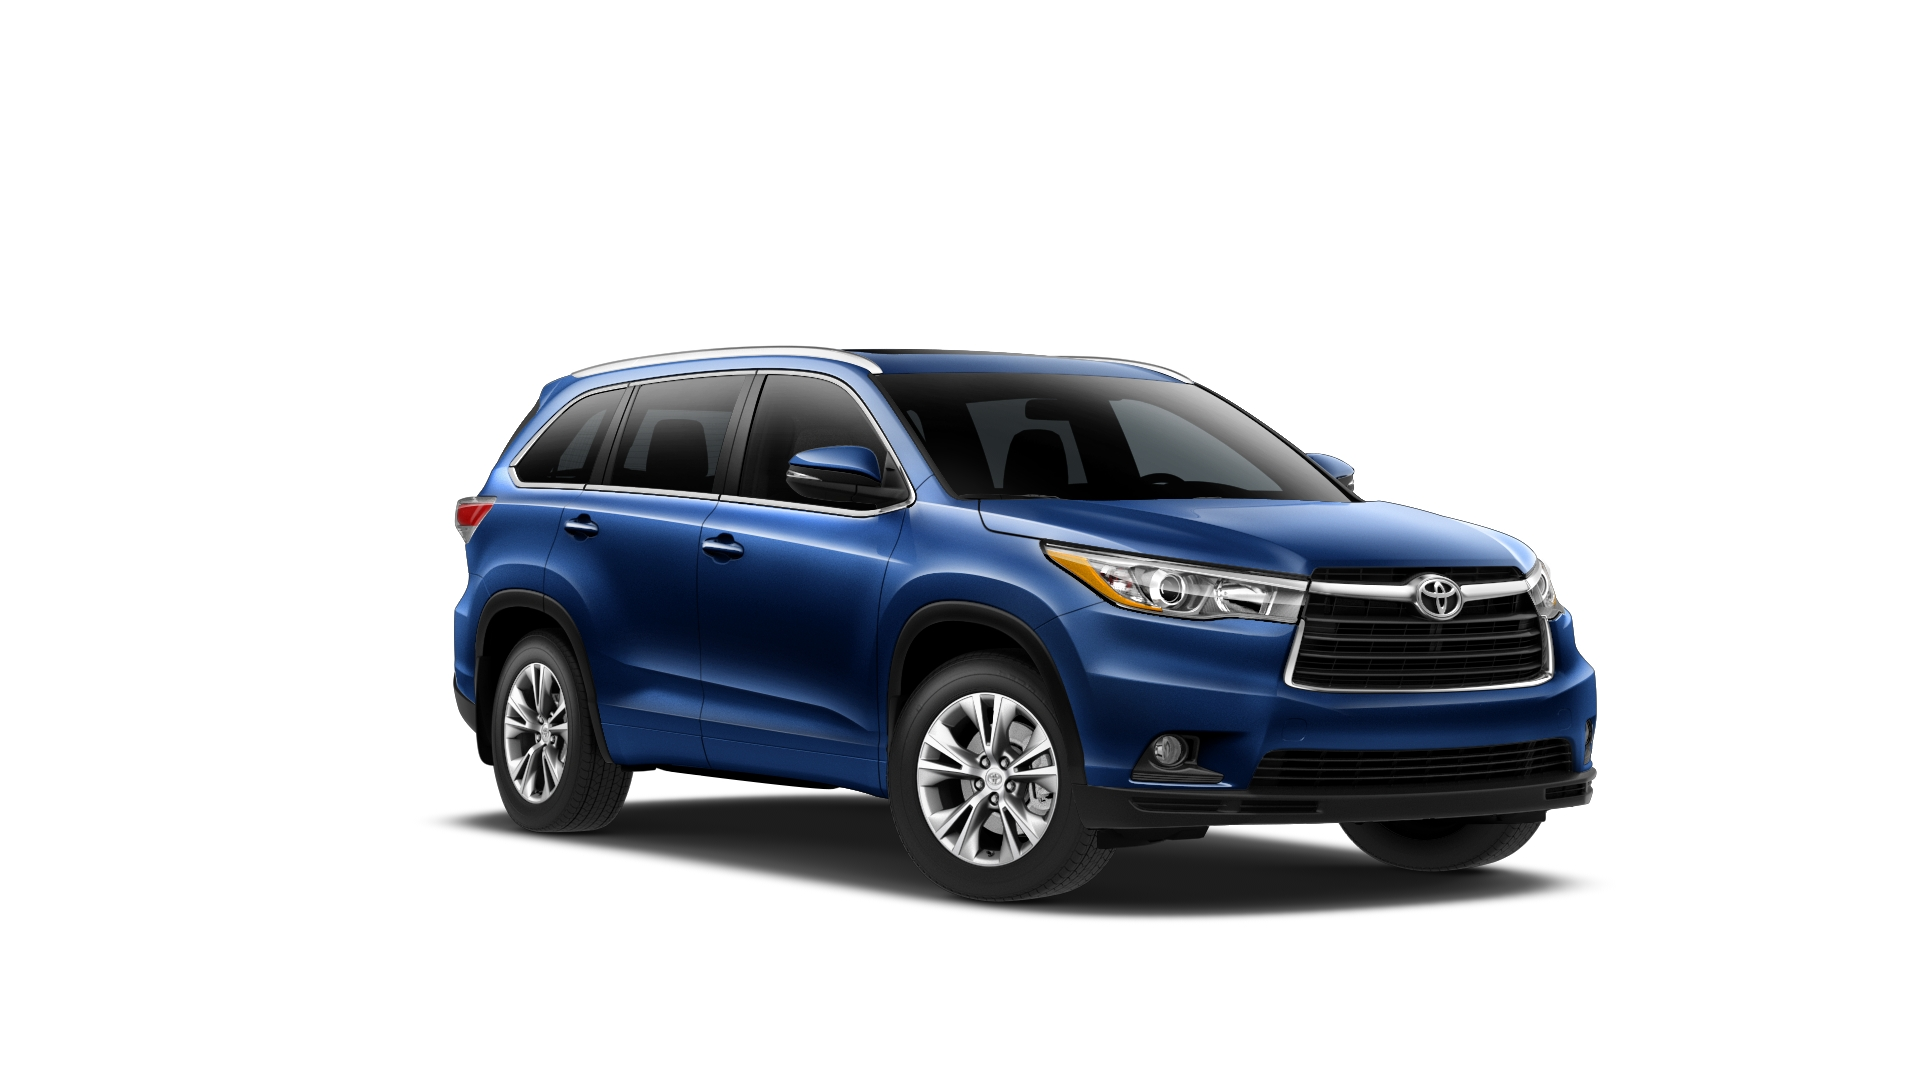 2015 toyota highlander hybrid suv limited v6 4dr all wheel drive 2015 highlander invoice price